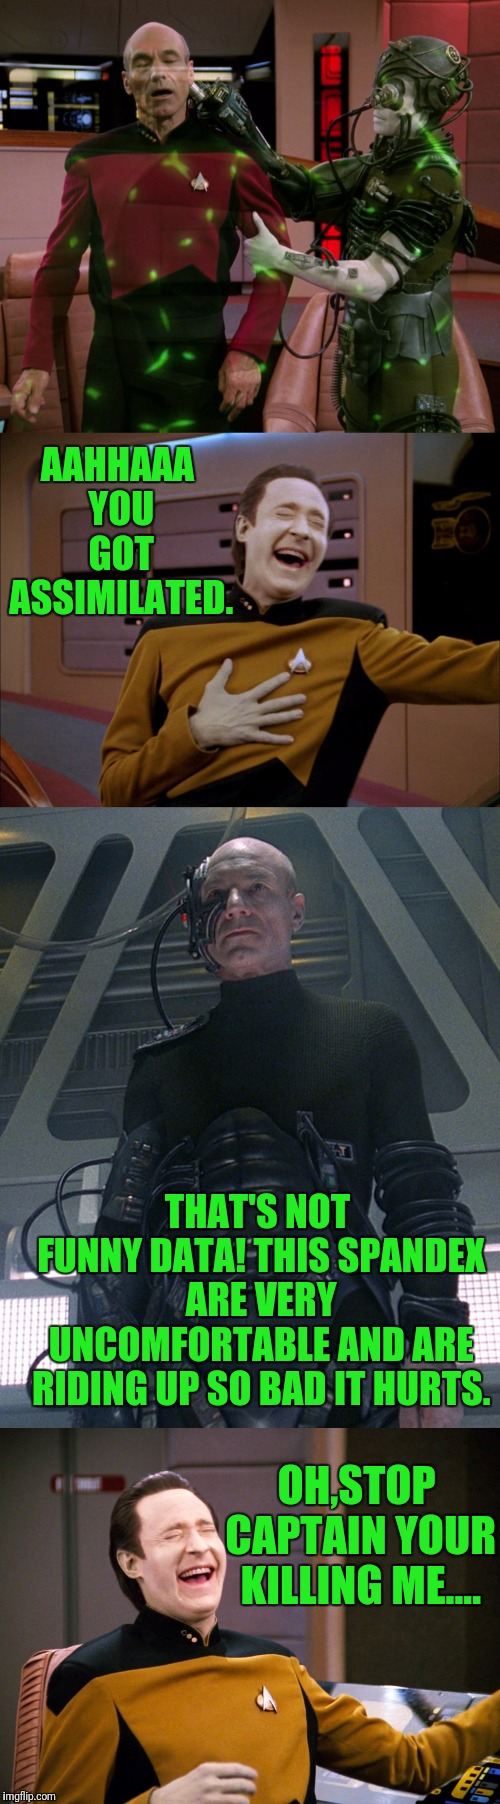 Data Laughing At Picards Misfortune |  AAHHAAA YOU GOT ASSIMILATED. THAT'S NOT FUNNY DATA! THIS SPANDEX ARE VERY UNCOMFORTABLE AND ARE RIDING UP SO BAD IT HURTS. OH,STOP CAPTAIN YOUR KILLING ME.... | image tagged in star trek the next generation,captain picard,data,the borg,star trek,picard | made w/ Imgflip meme maker